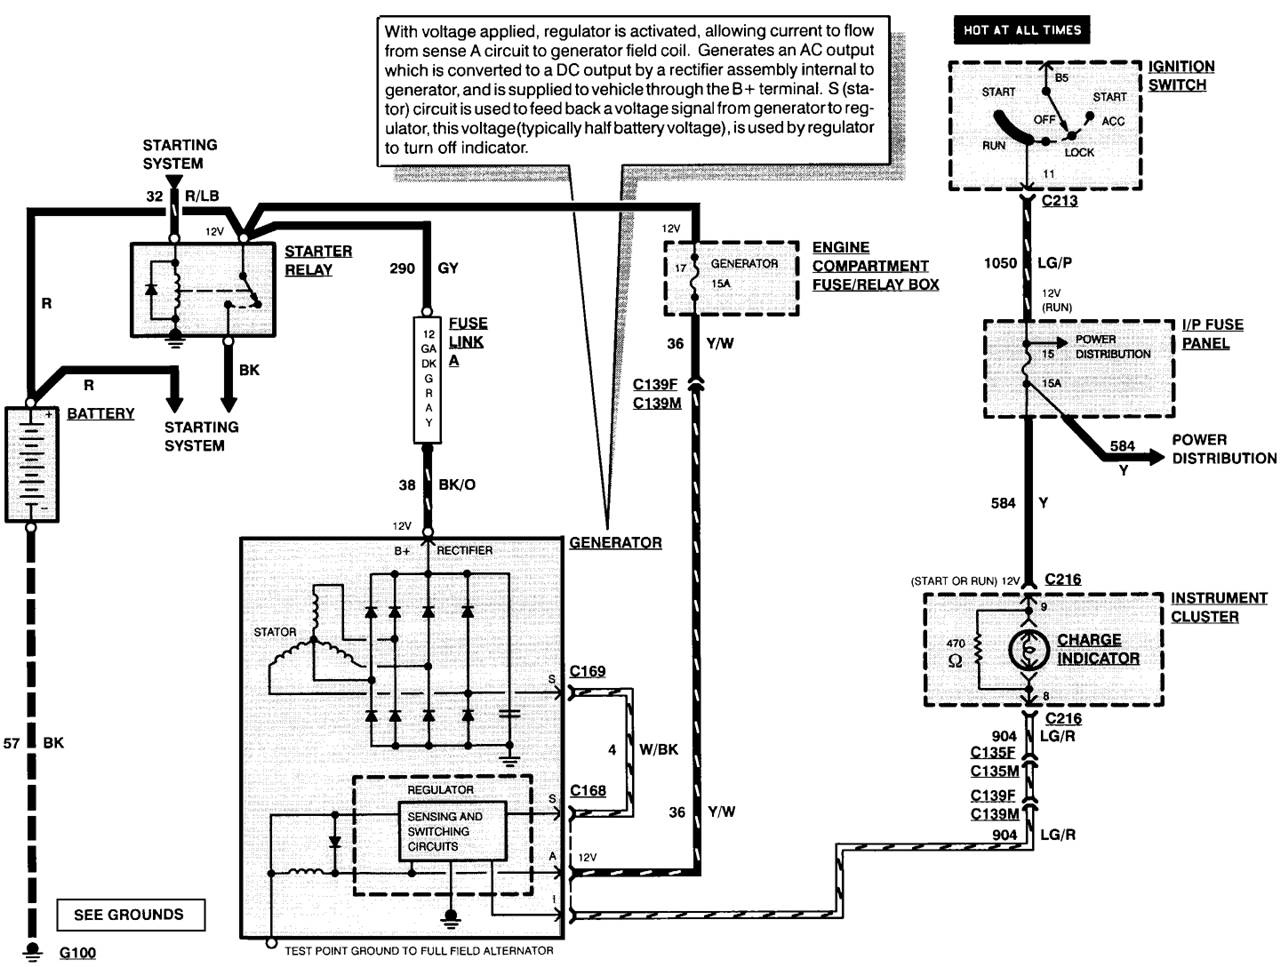 alternator schematic diagram furthermore telephone wiring color code